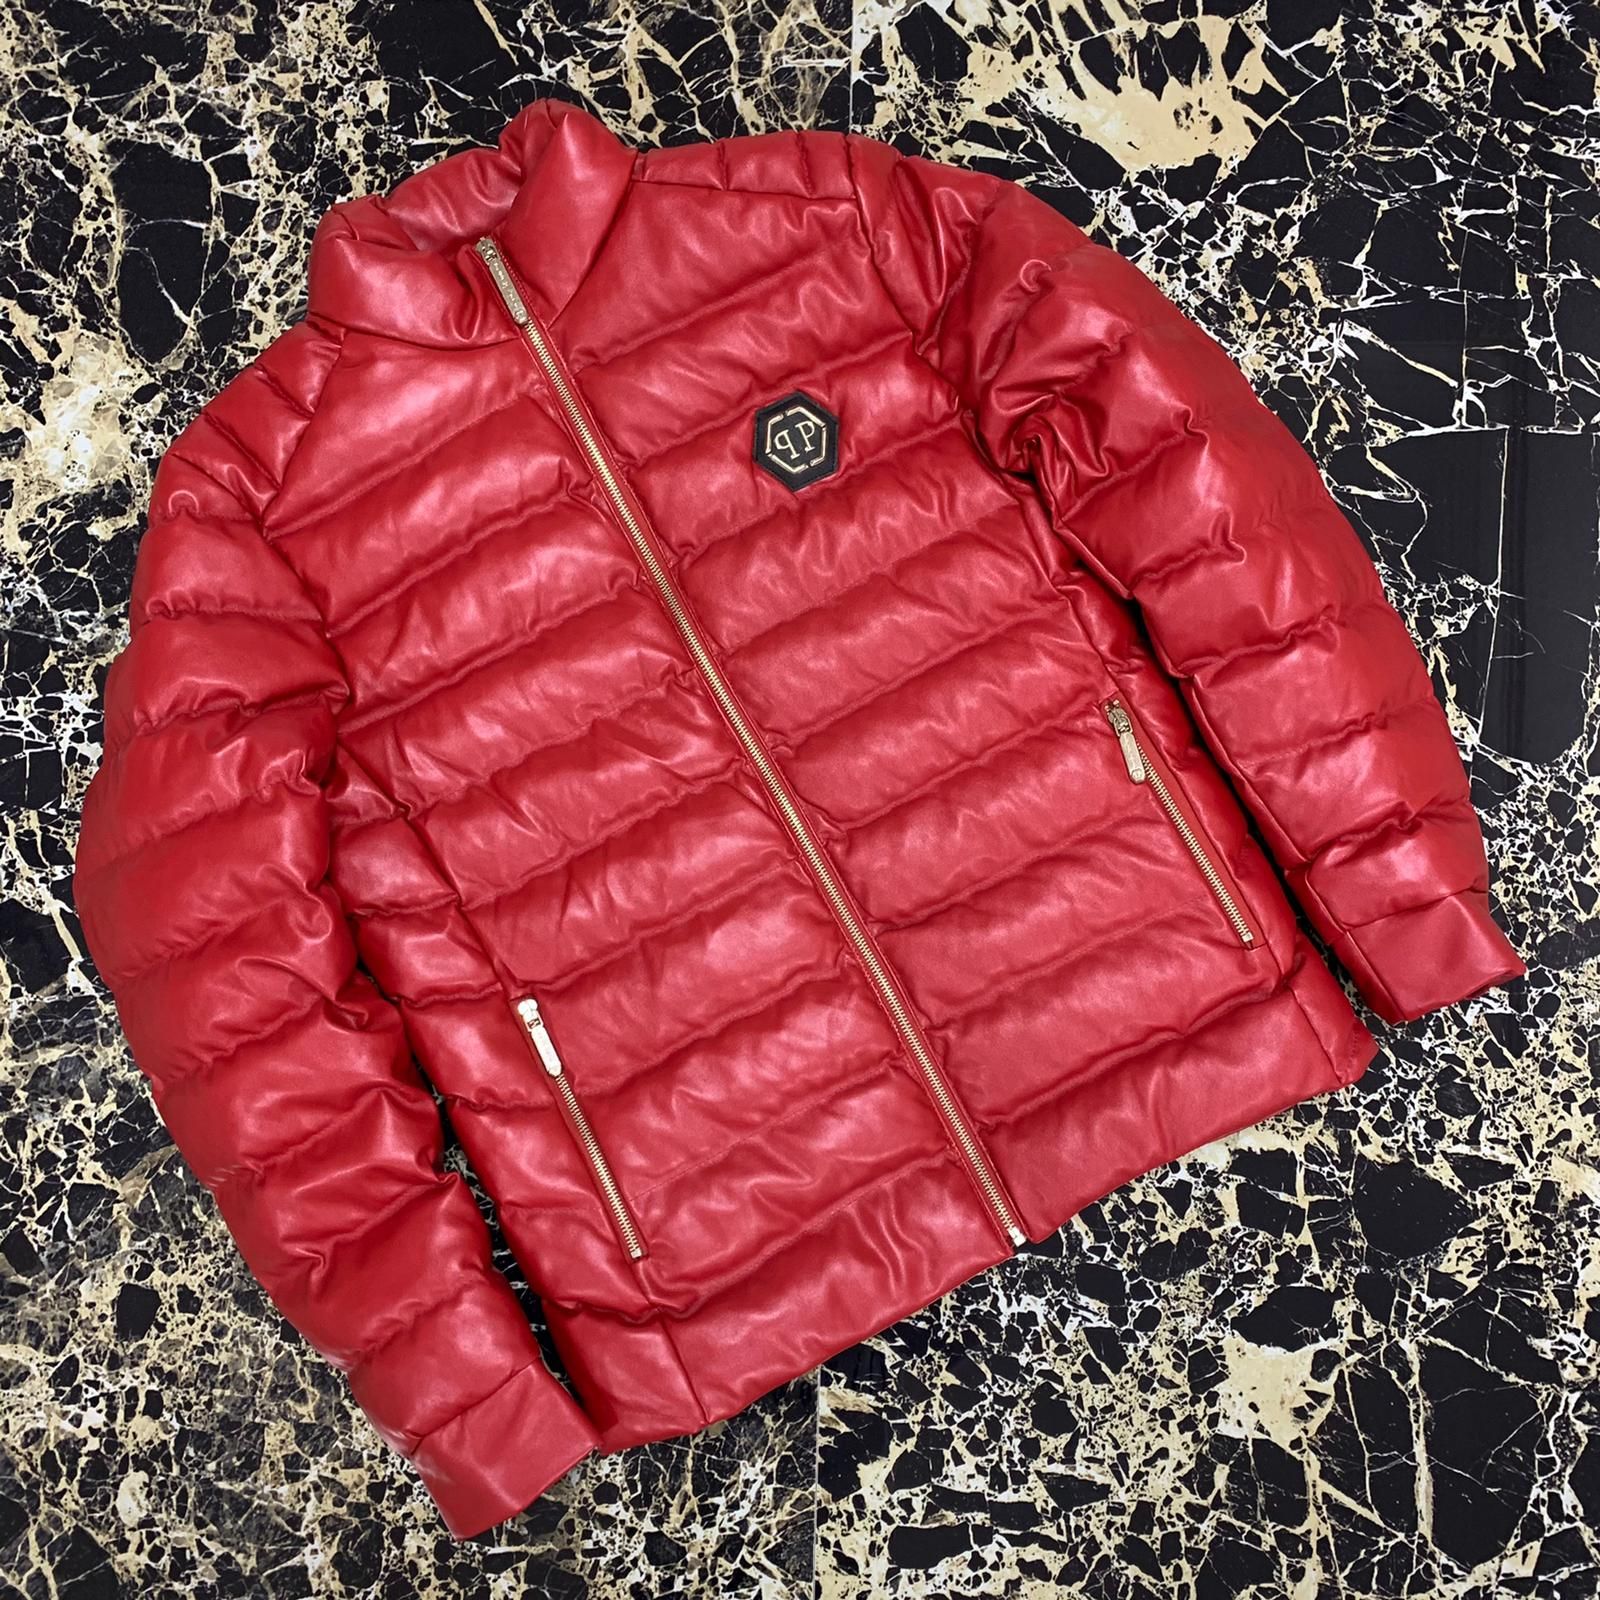 Men 2021 Coat Jackets Parkas Jacket New Fashion High Quality Brand Casual Clothing Clothes Coats Outwear New Season